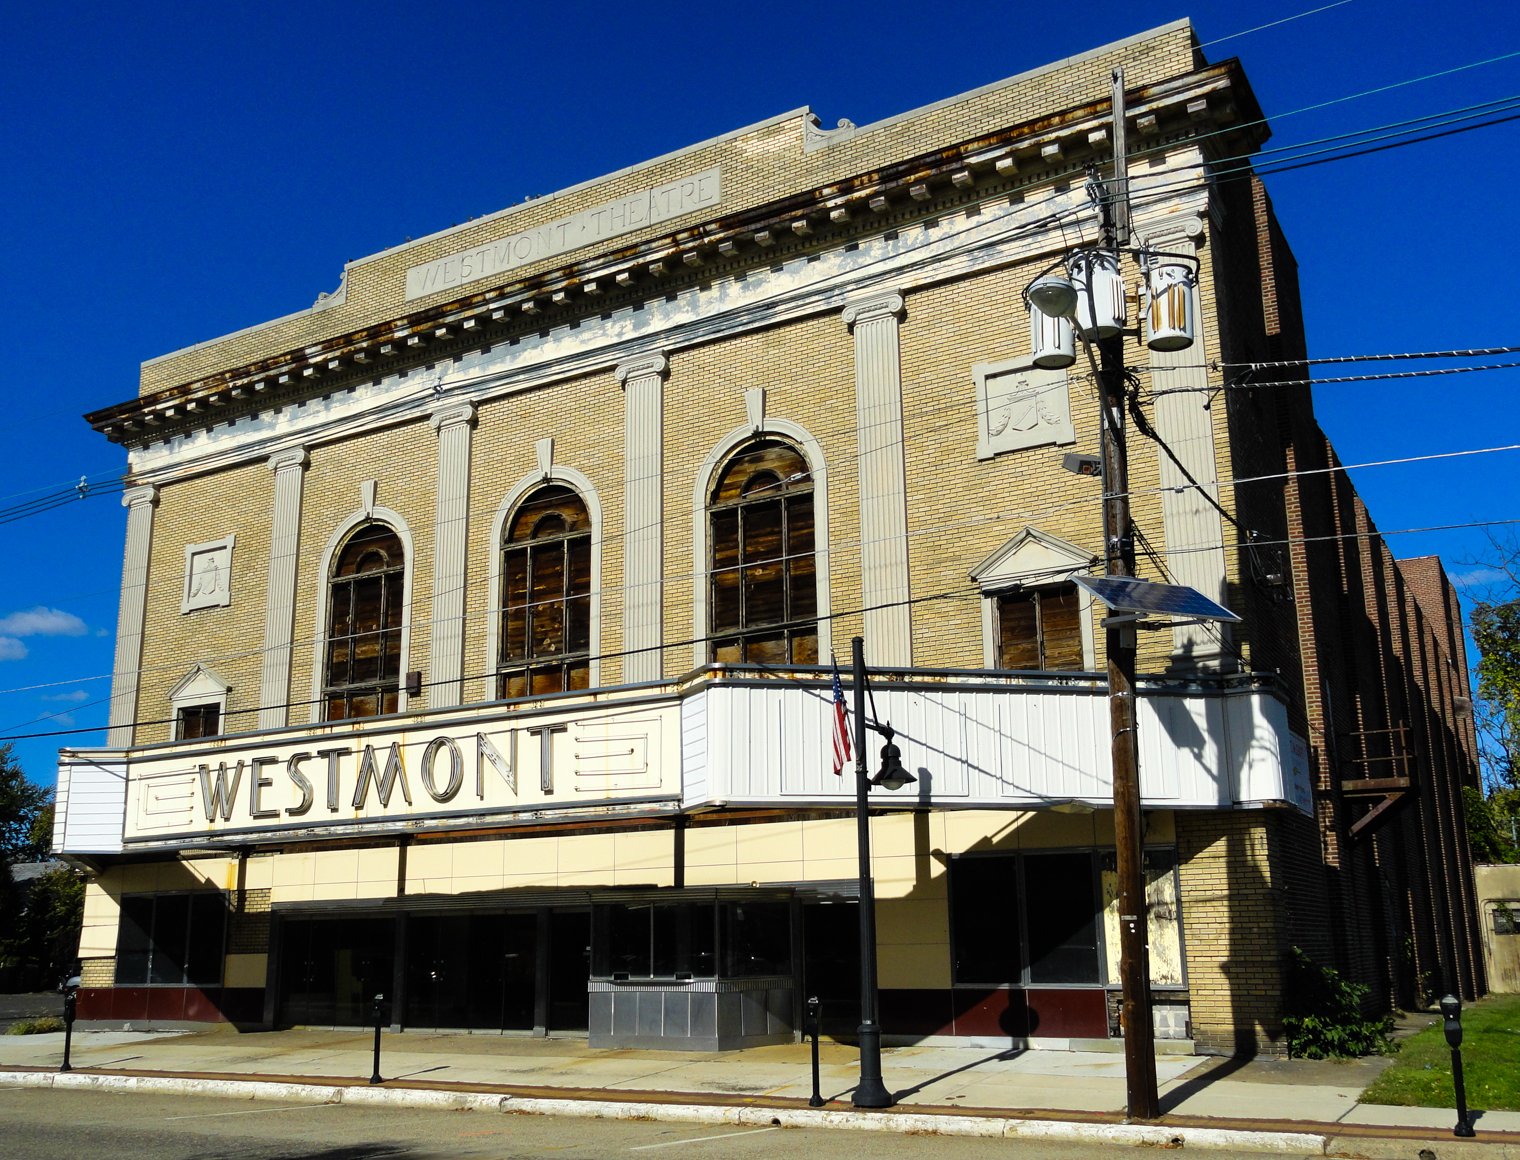 Developers for the historic Westmont Theatre say plans for the structure are still in progress. Credit: Matt Skoufalos.